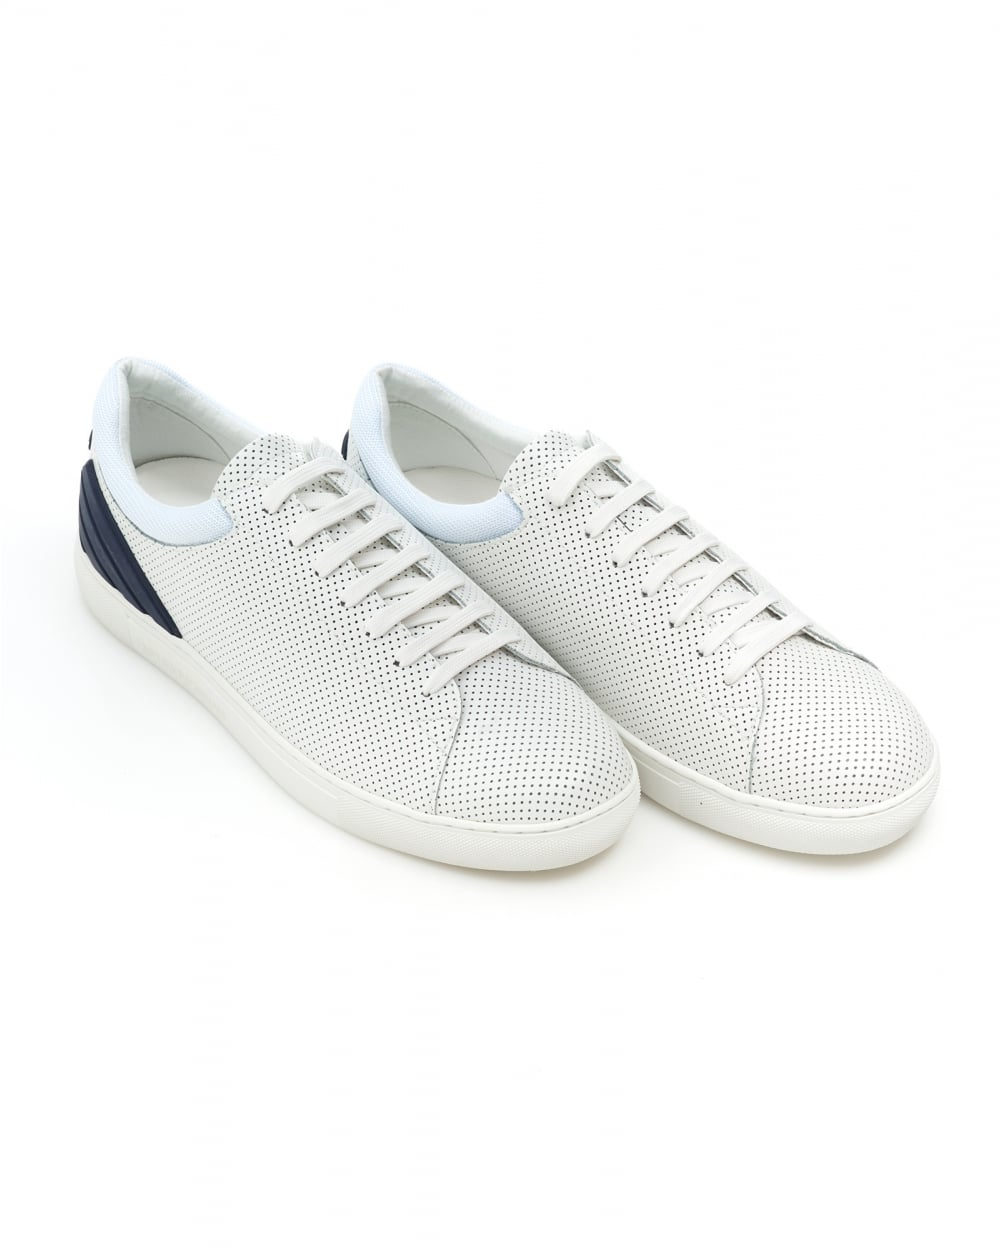 ce8b5482 Emporio Armani Mens Perforated Trainers, Lace Up White Leather ...